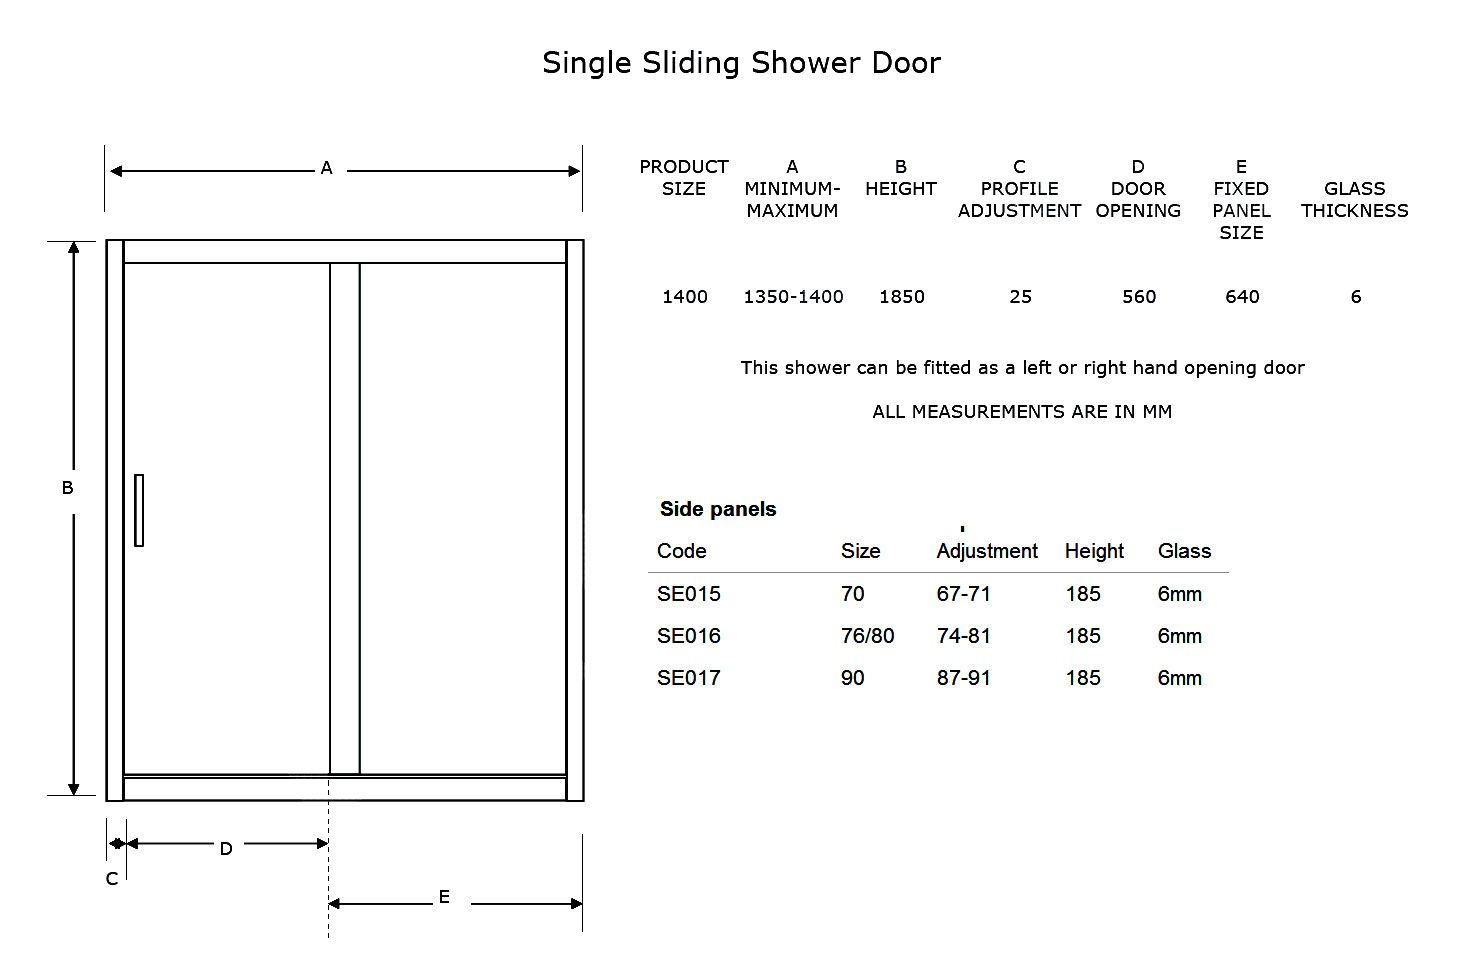 Standard Sliding Glass Door Sizes Inspiration On Sliding Doors For Window Treatments For Slidin Double Patio Doors Sliding Glass Doors Patio Sliding Glass Door